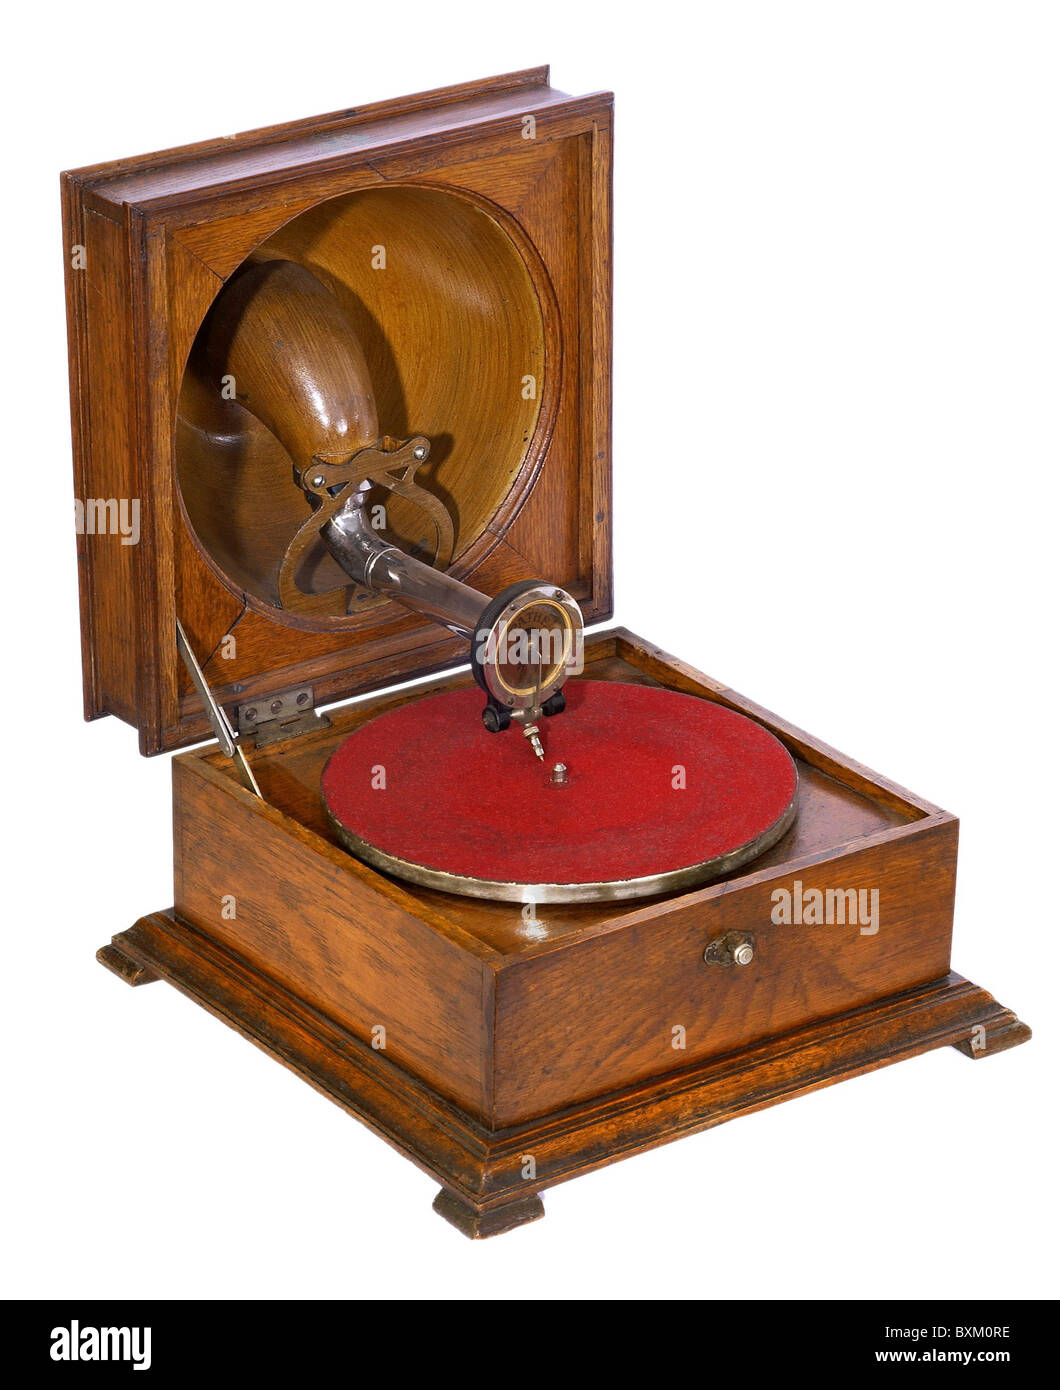 technics, audio, grammophone, made by Pathe, with reverse trumpet, 1910s, 10s, 20th century, historic, historical, - Stock Image